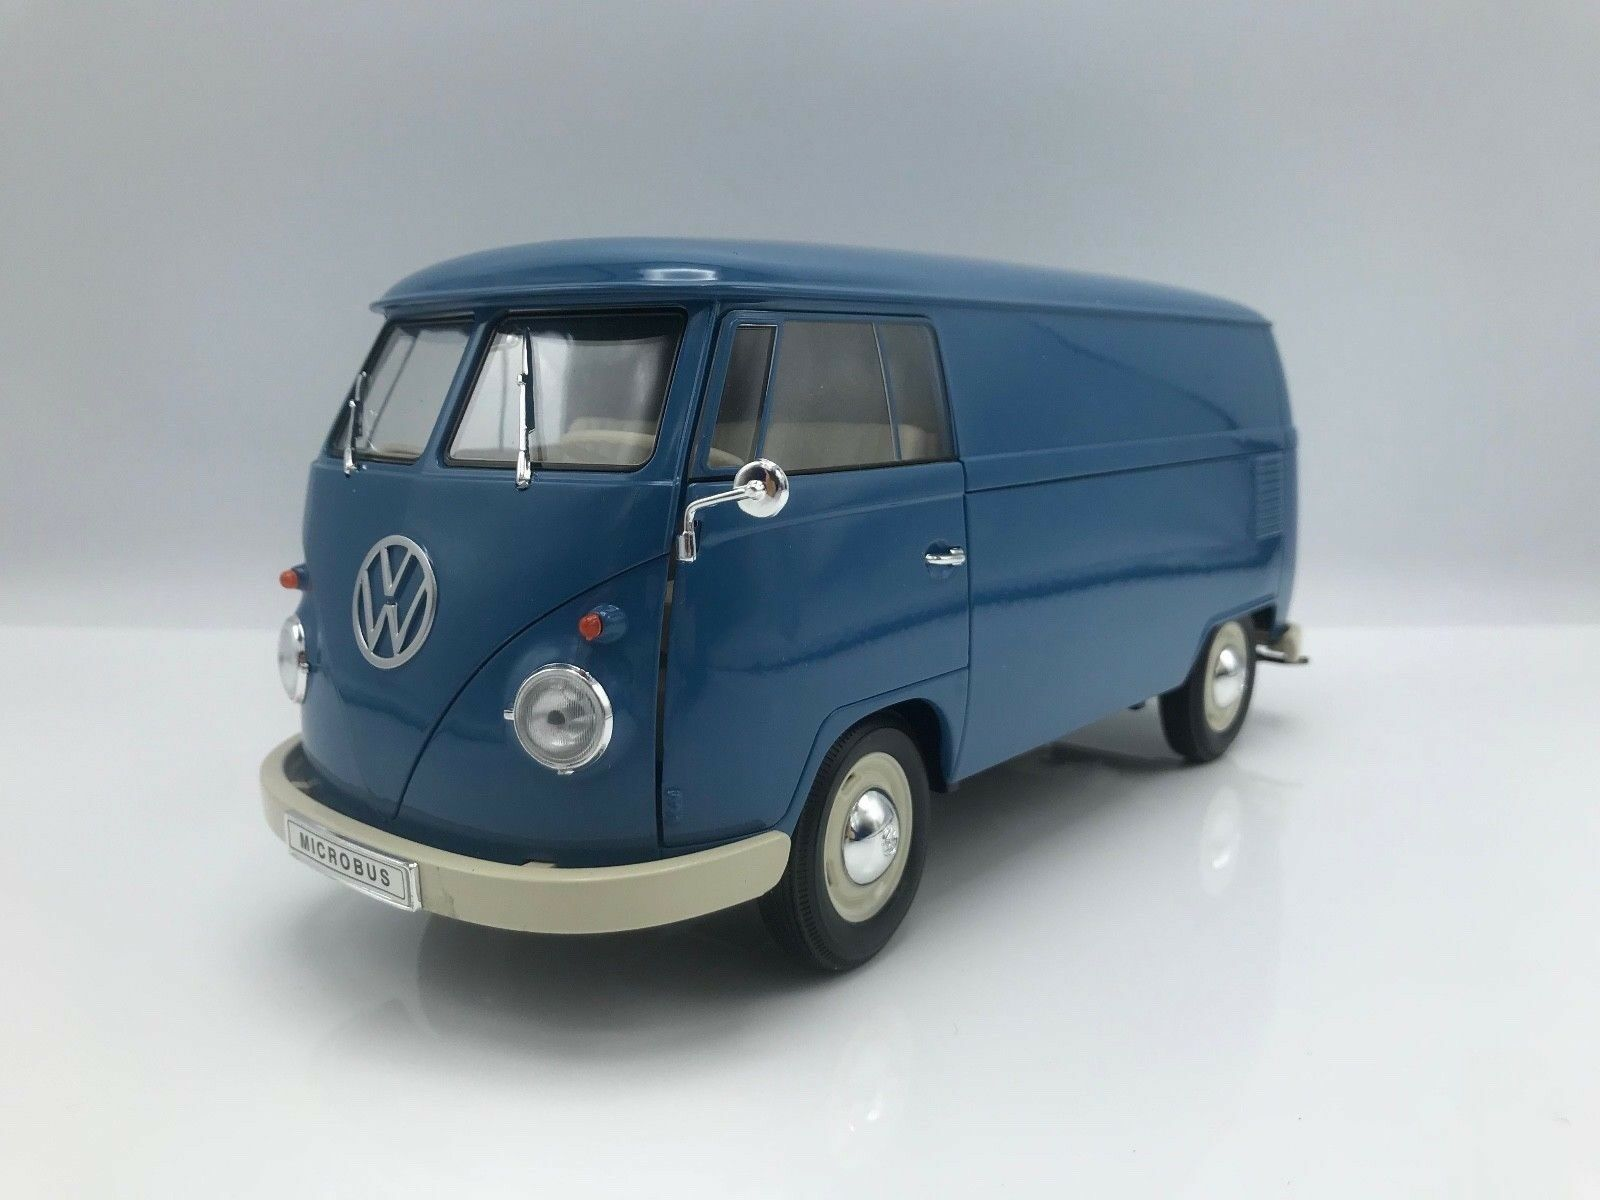 VW T1 Kastenwagen 1963  blue    -  1 18 Welly     NEW 665a47